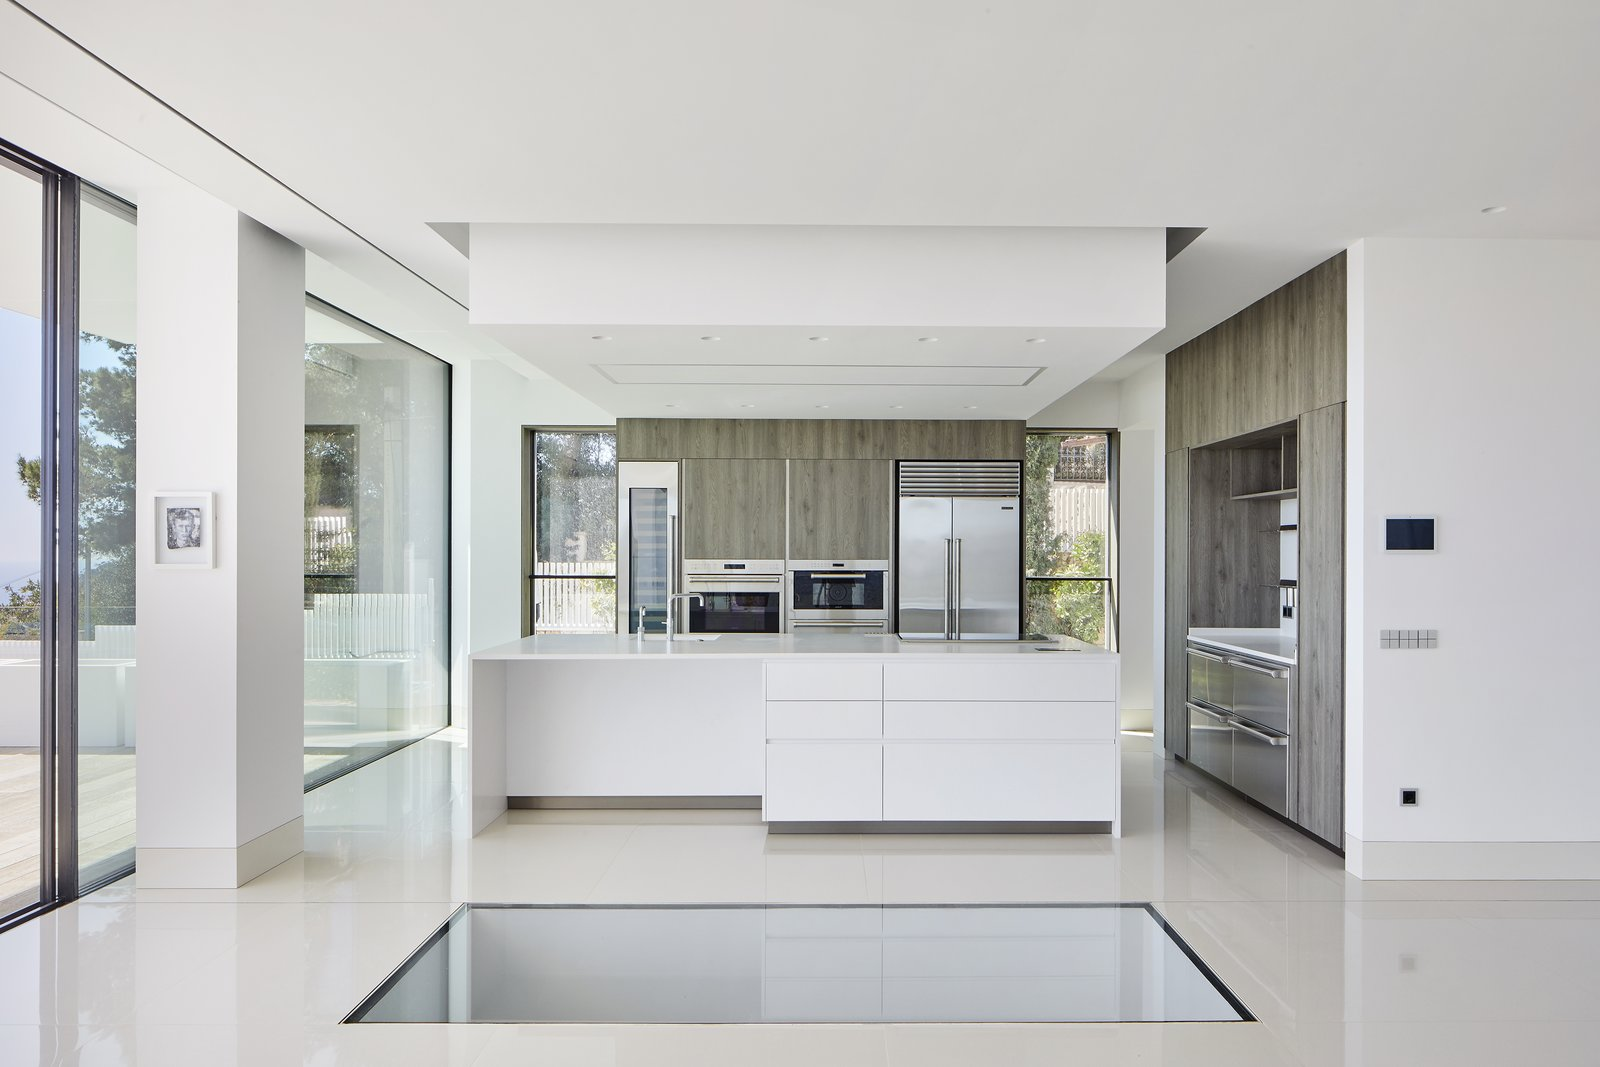 Kitchen, Wall Oven, White, Metal, Microwave, Wine Cooler, Drop In, Laminate, Ceiling, Granite, Range, Range Hood, Dishwasher, Ice Maker, Table, Beverage Center, Cooktops, Wood, Refrigerator, and Porcelain Tile Kitchen.  Best Kitchen Refrigerator Ice Maker Beverage Center Metal White Wood Wine Cooler Photos from 廚房